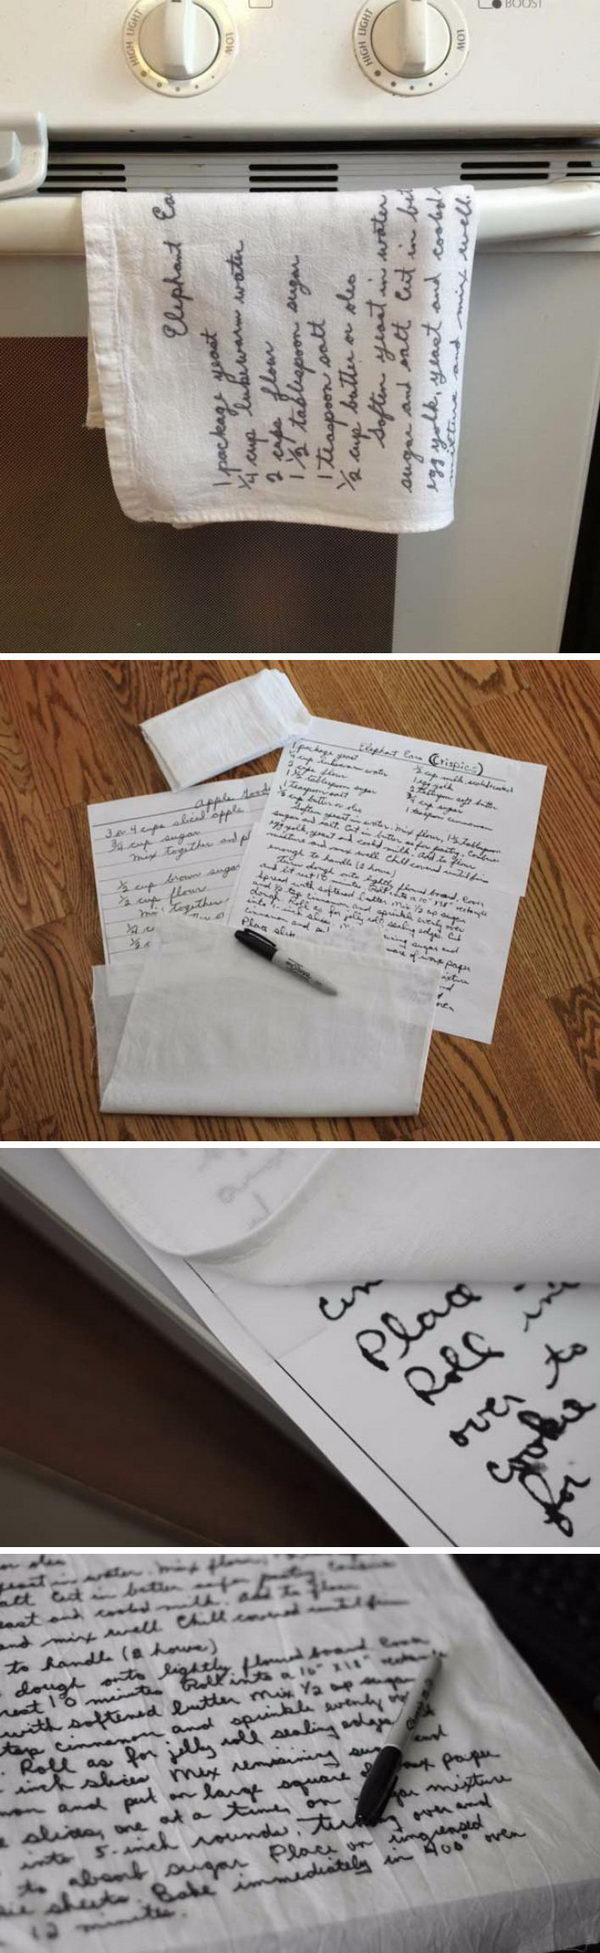 Handwritten Recipes Printed on Tea Towels For Mom.